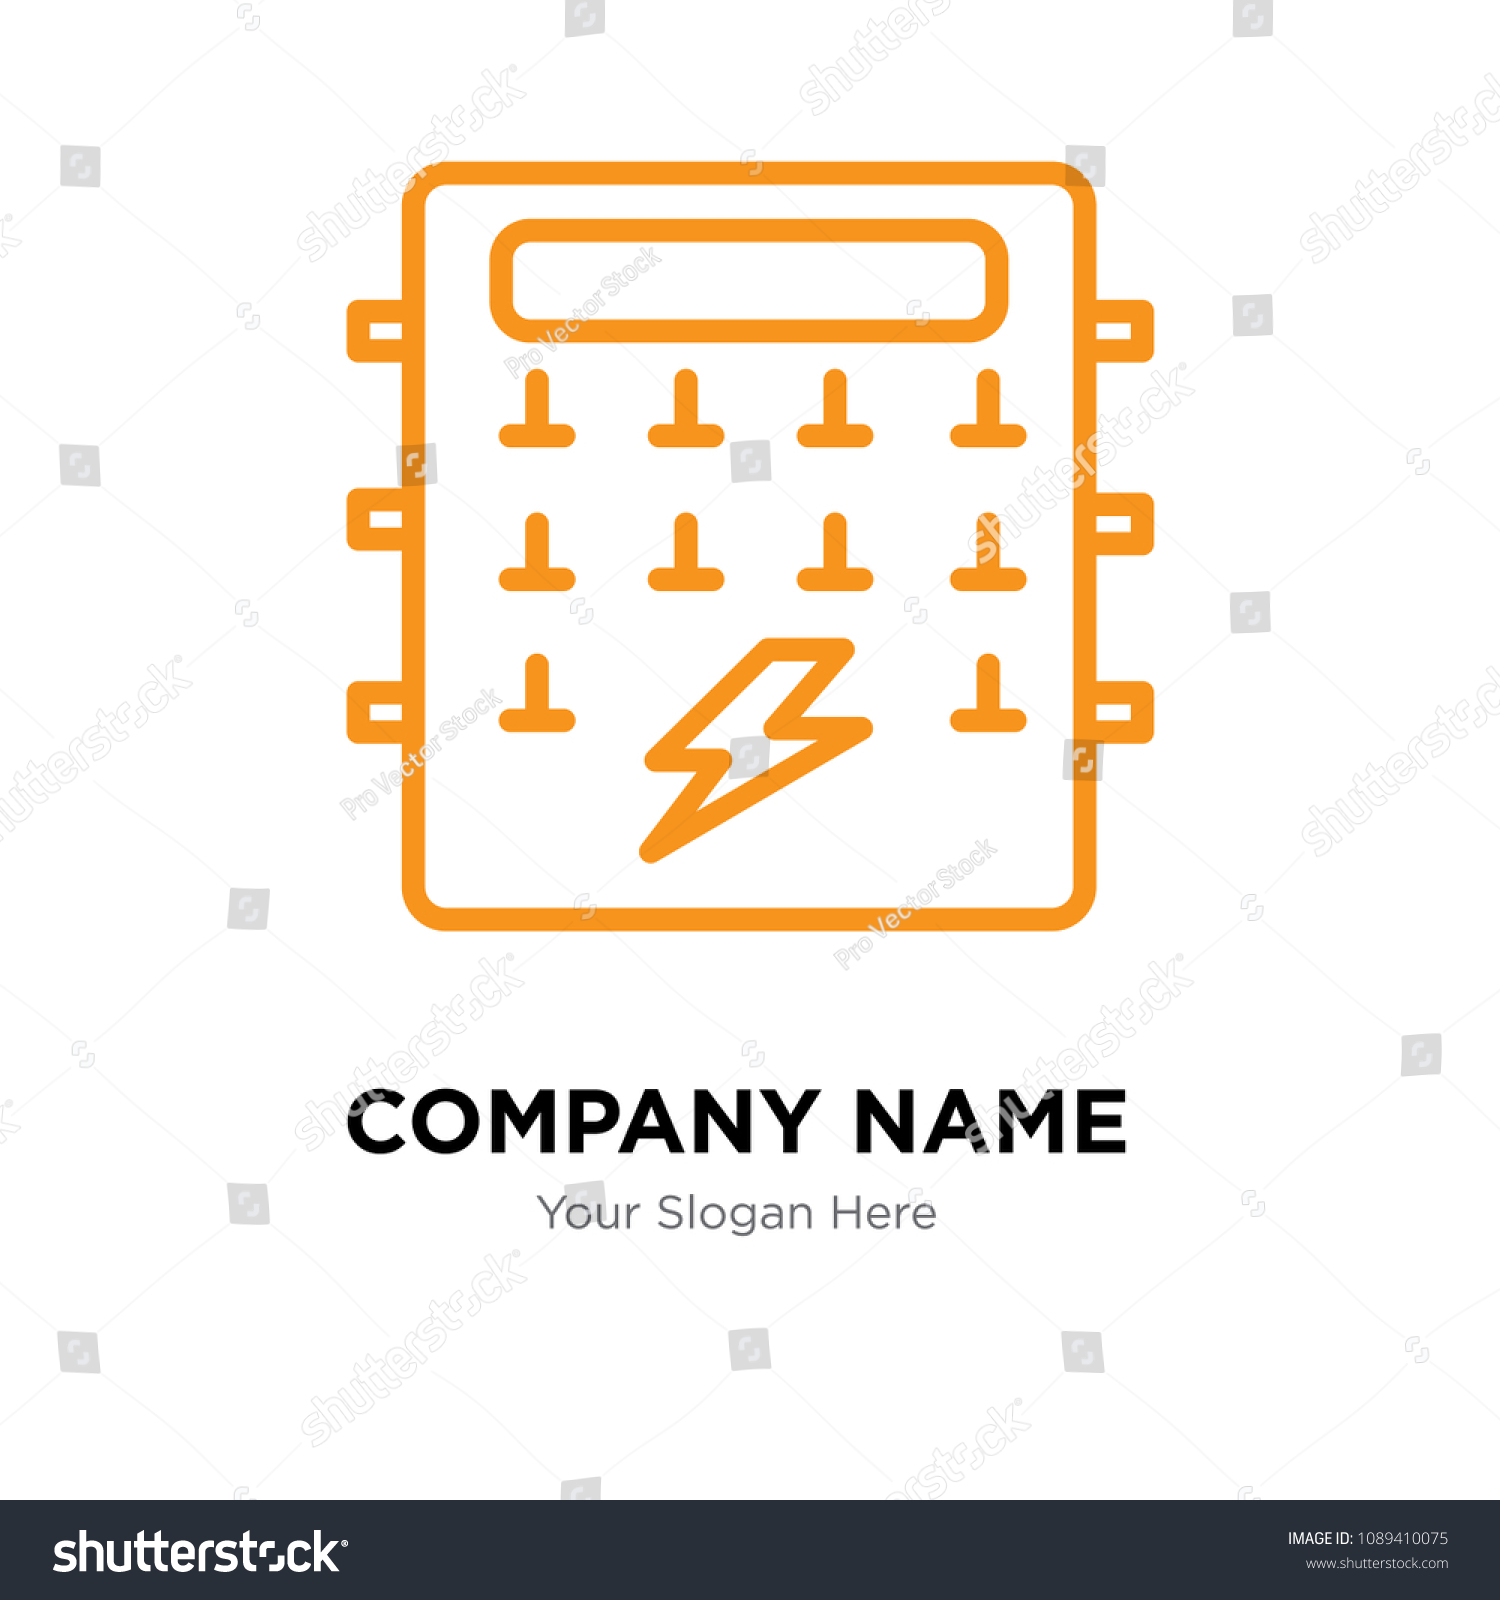 Fuse box company logo design template, Business corporate vector icon, fuse  box symbol